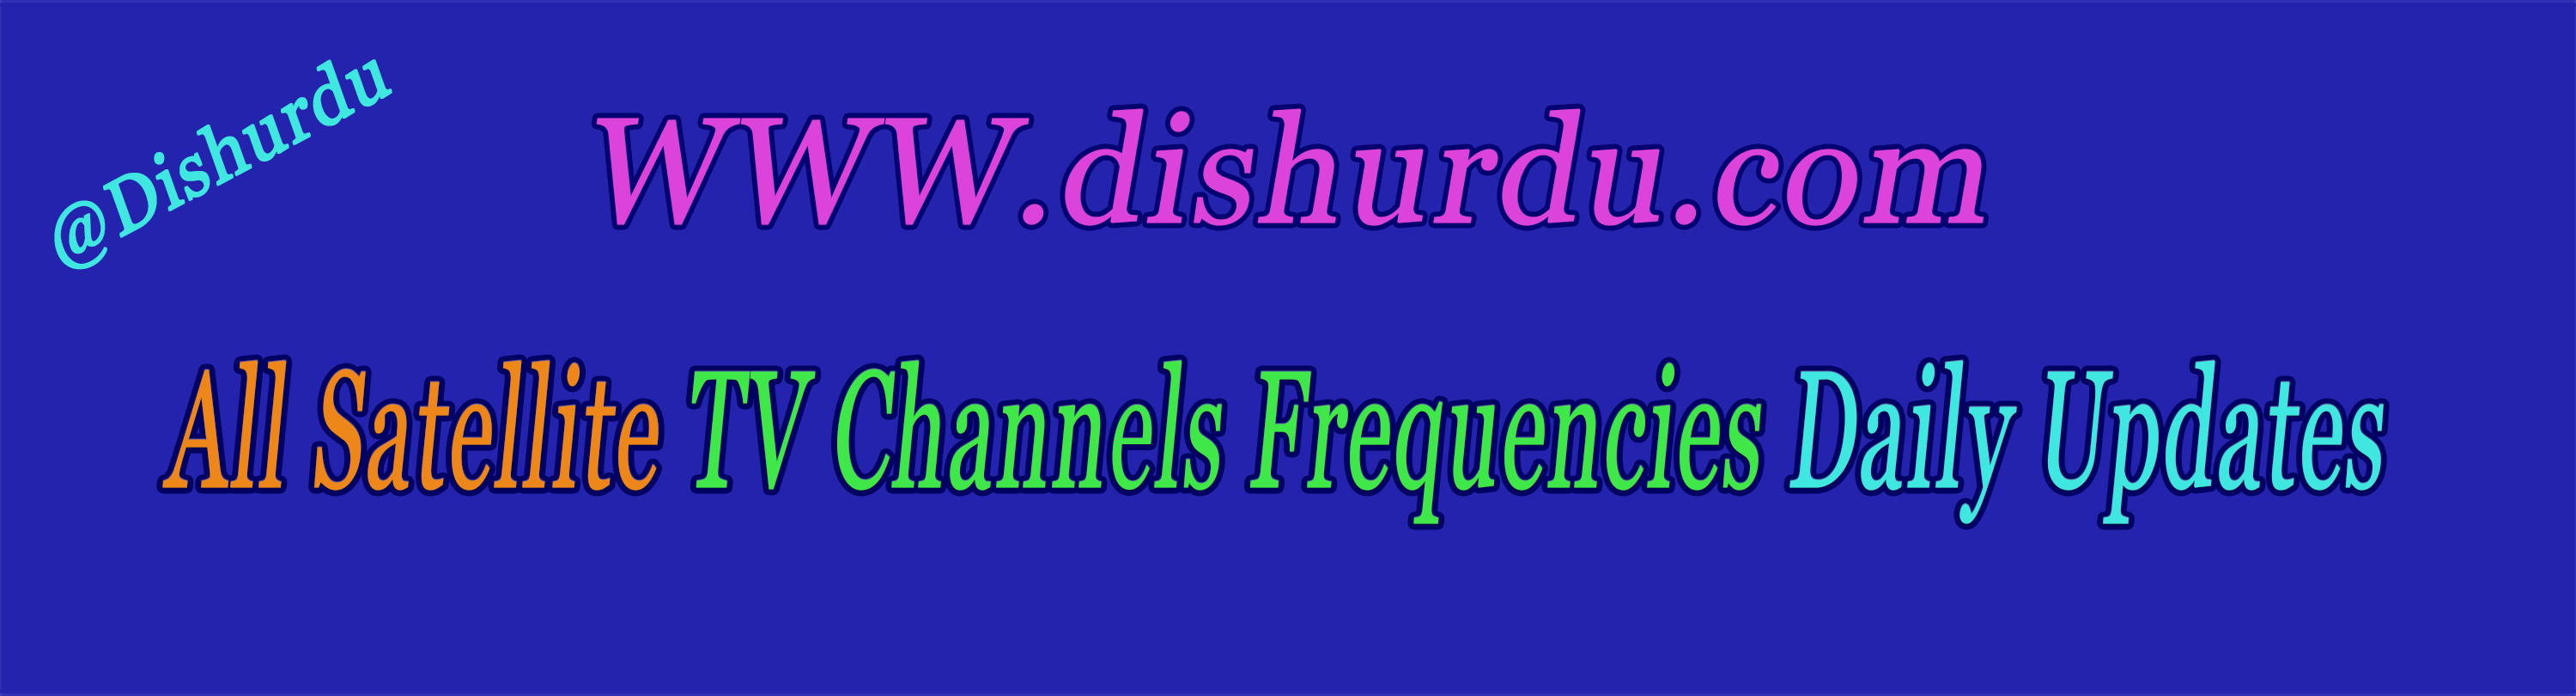 Satellite TV Channels Frequencies - Dishurdu - Medium